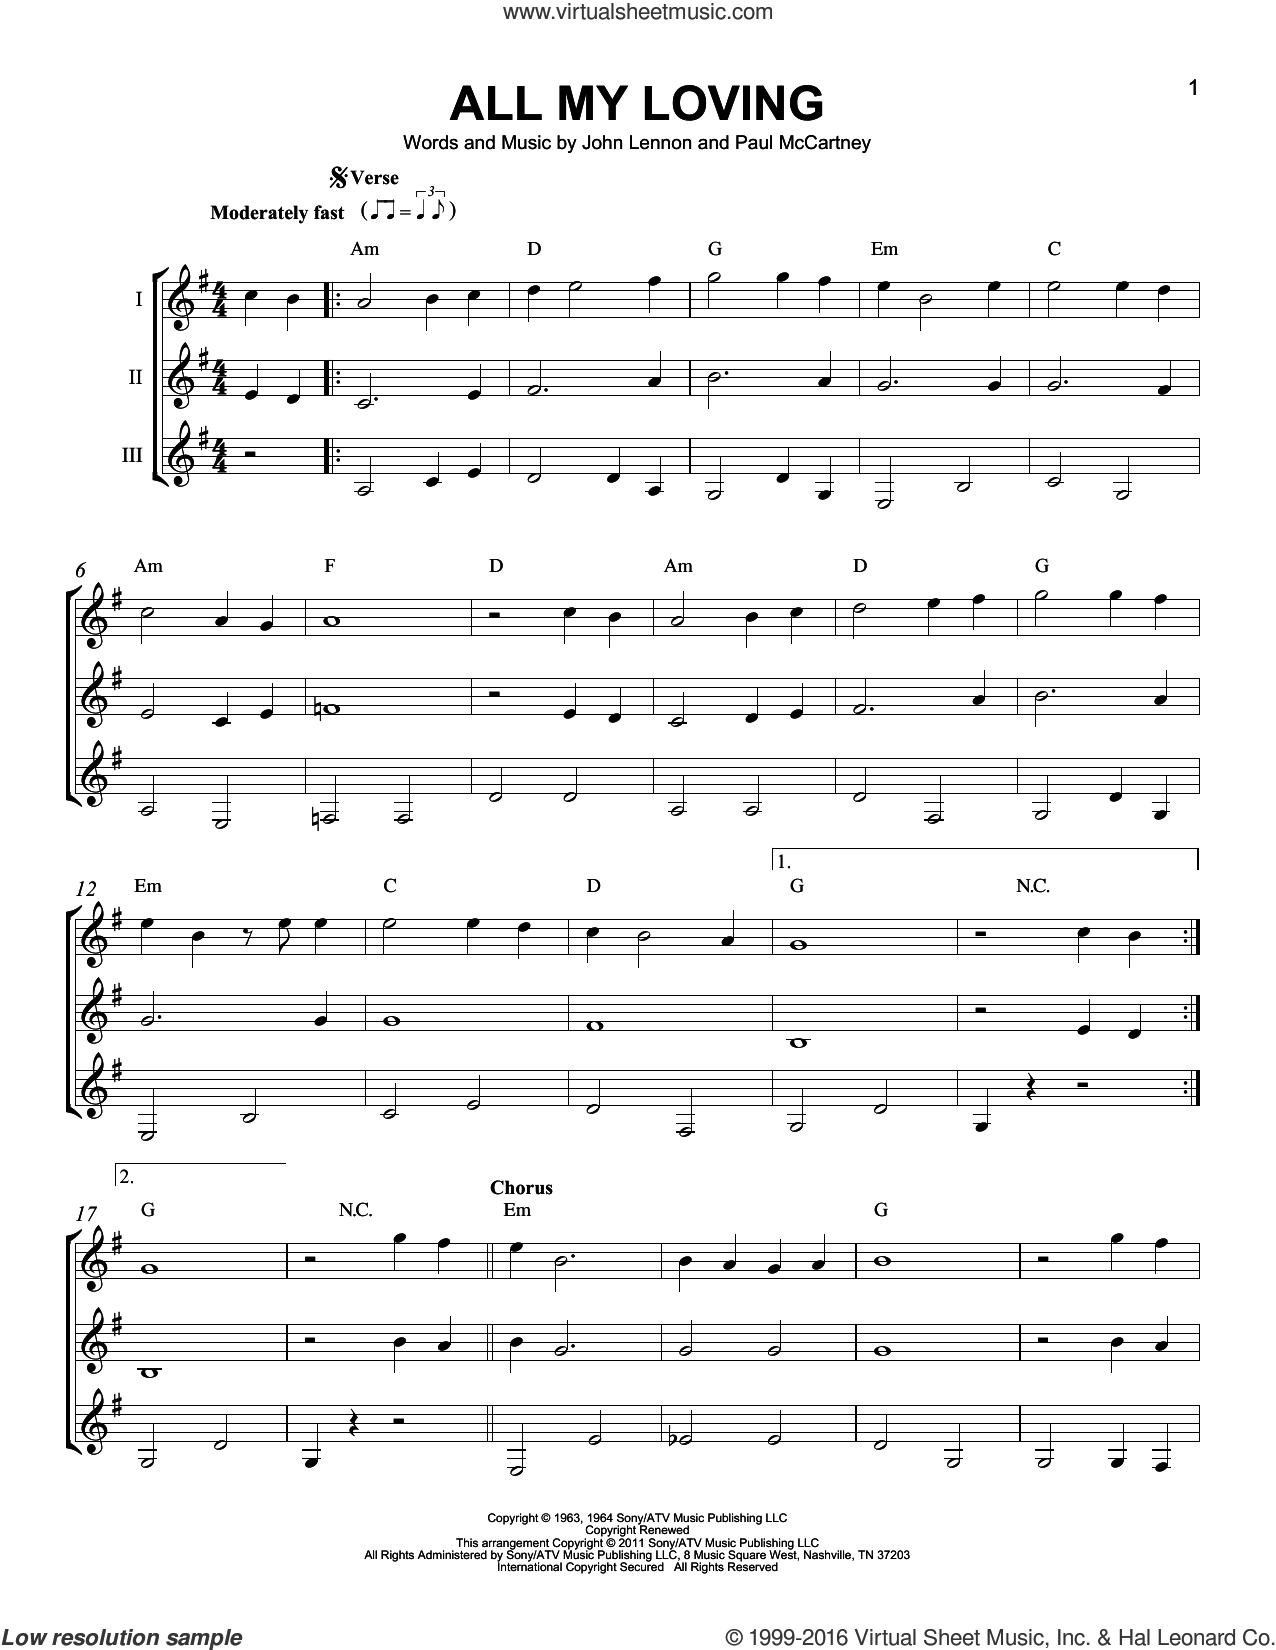 All My Loving sheet music for guitar ensemble by The Beatles, John Lennon and Paul McCartney, intermediate